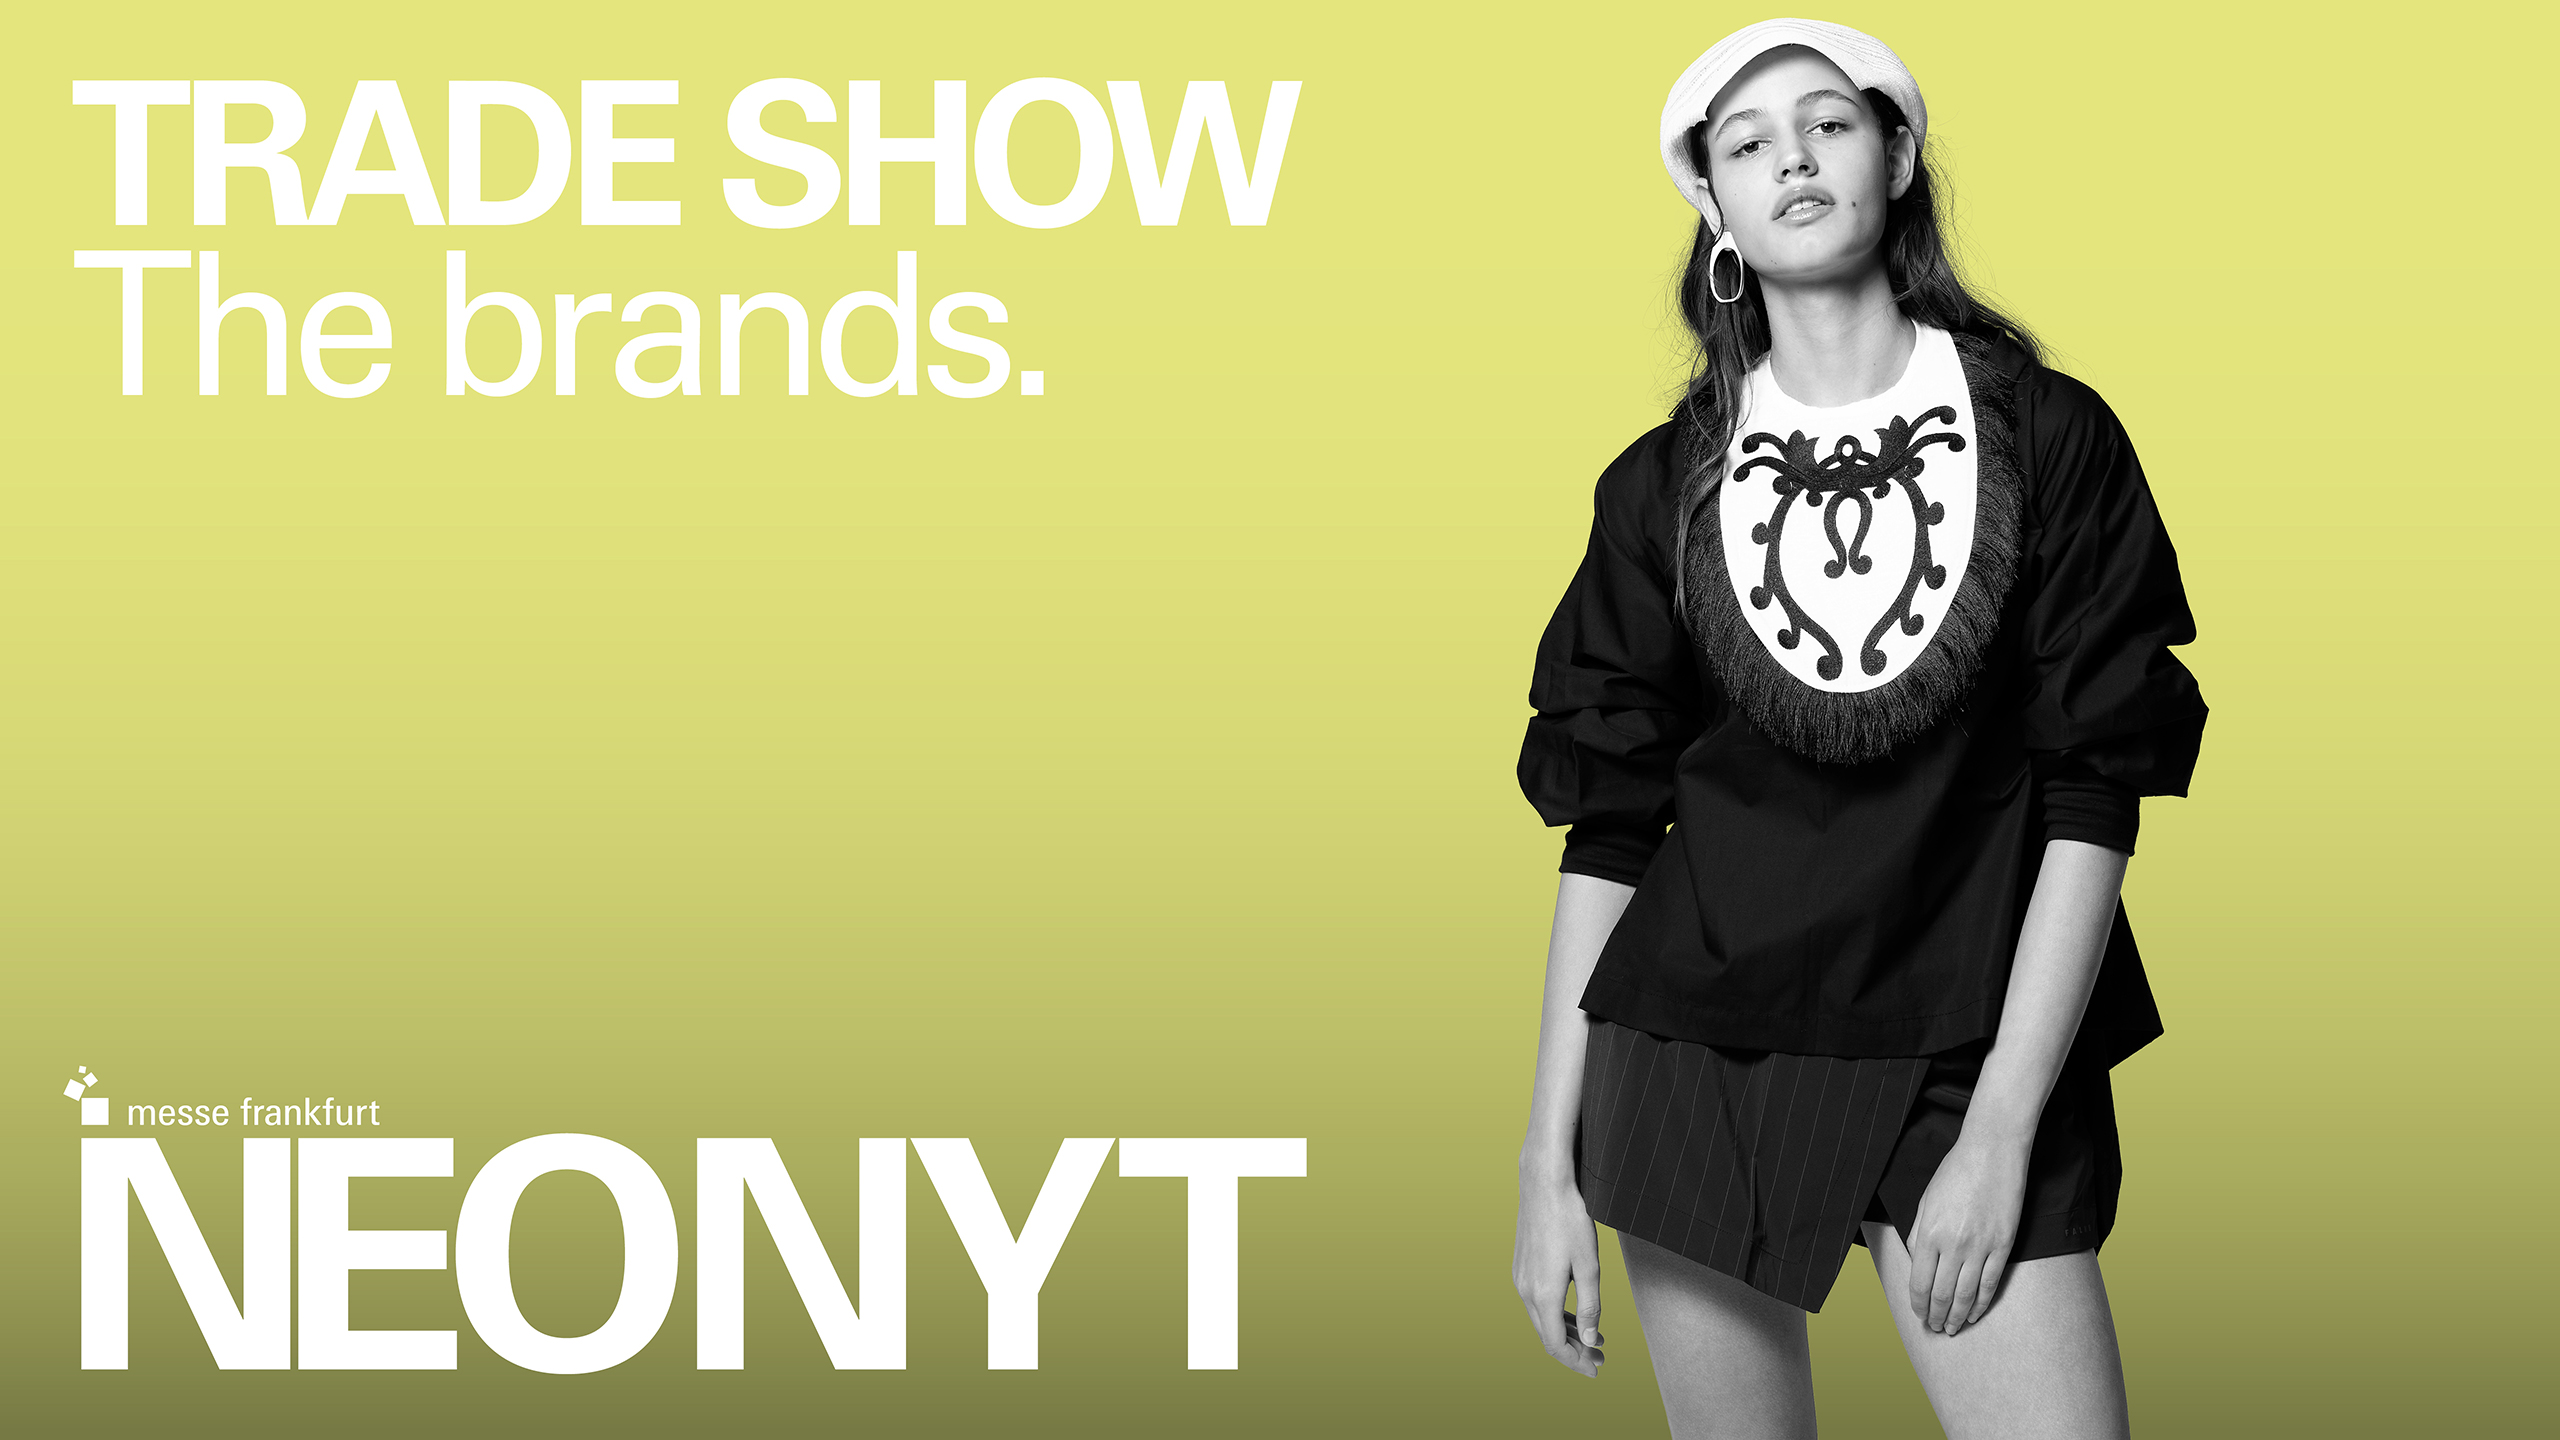 NEONYT: TRADE SHOW. The brands.